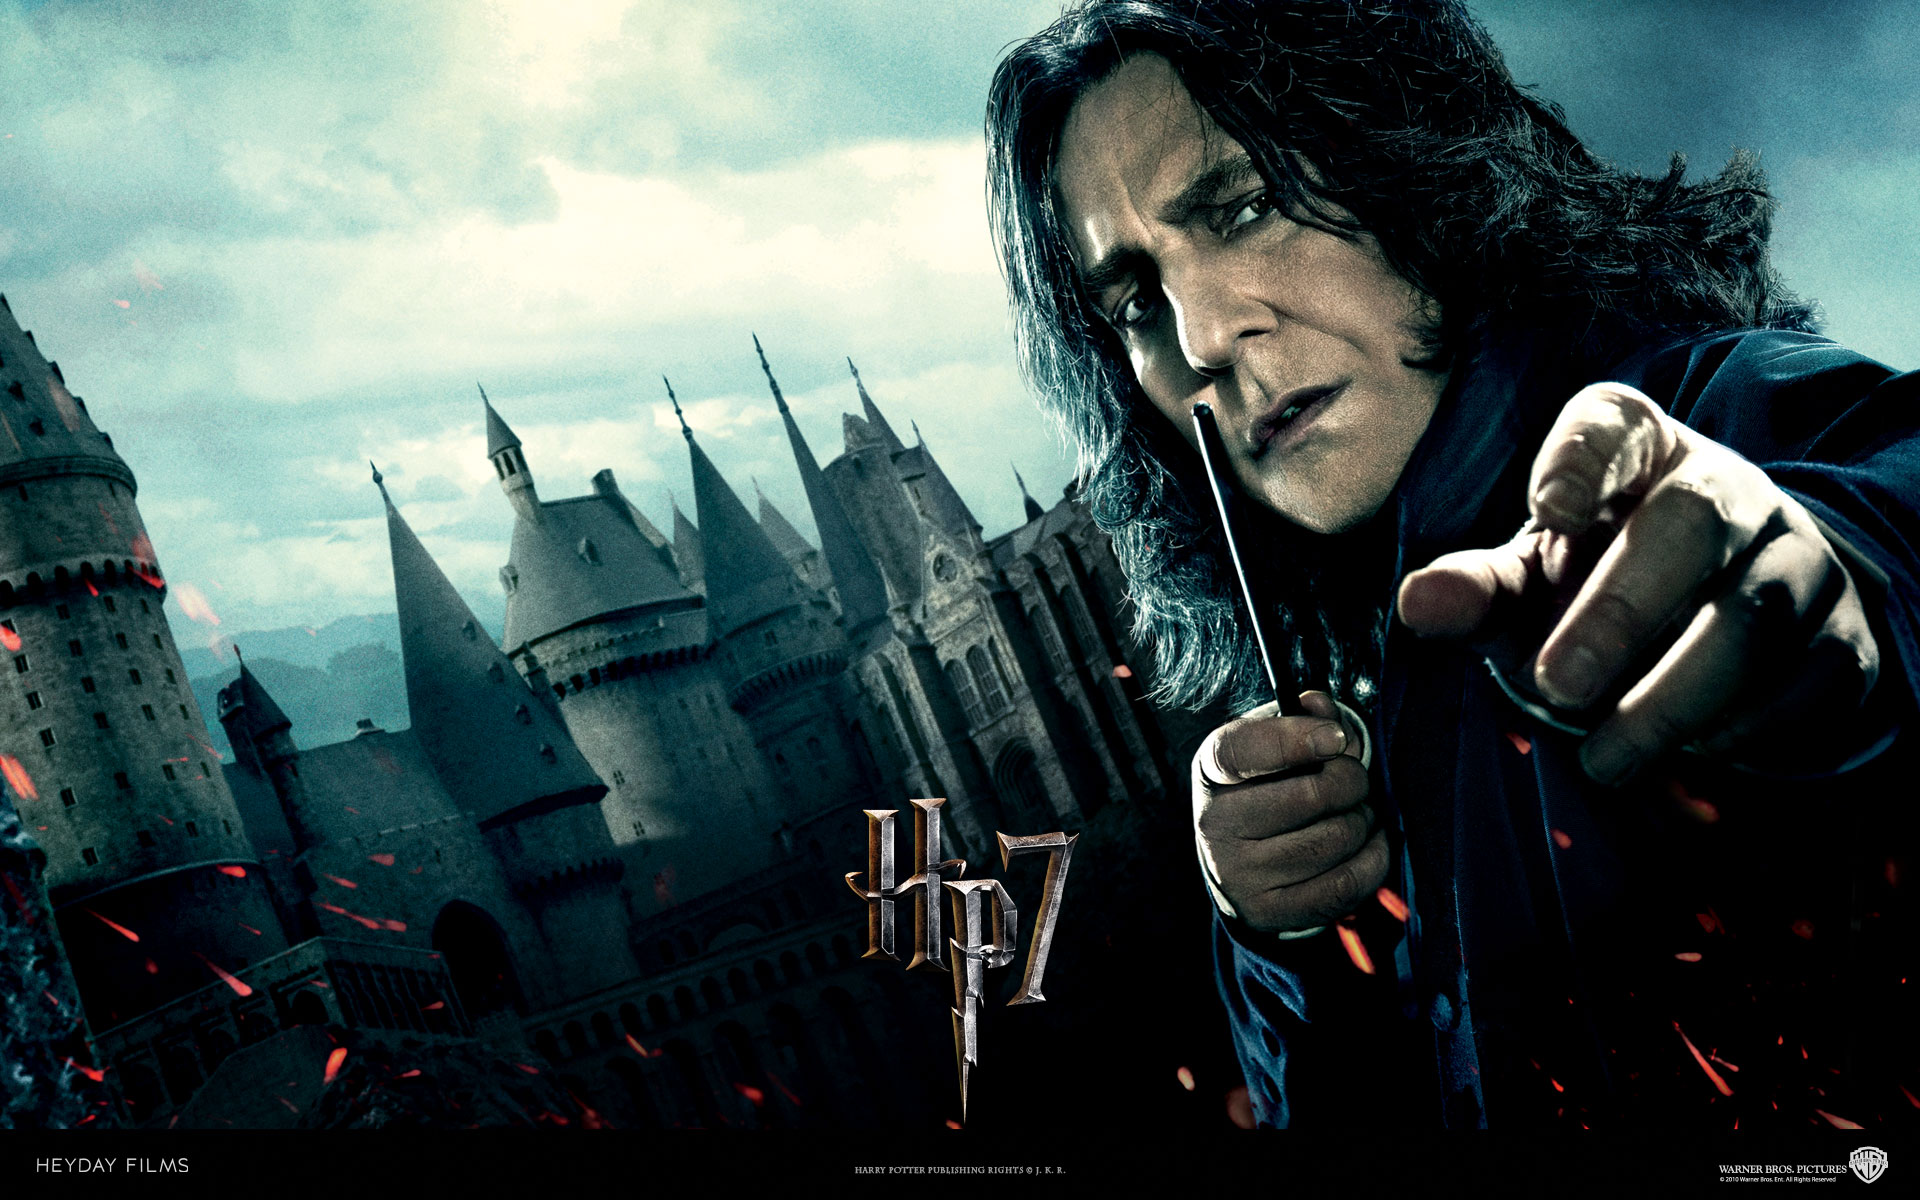 Wallpaper Harry Potter Snape